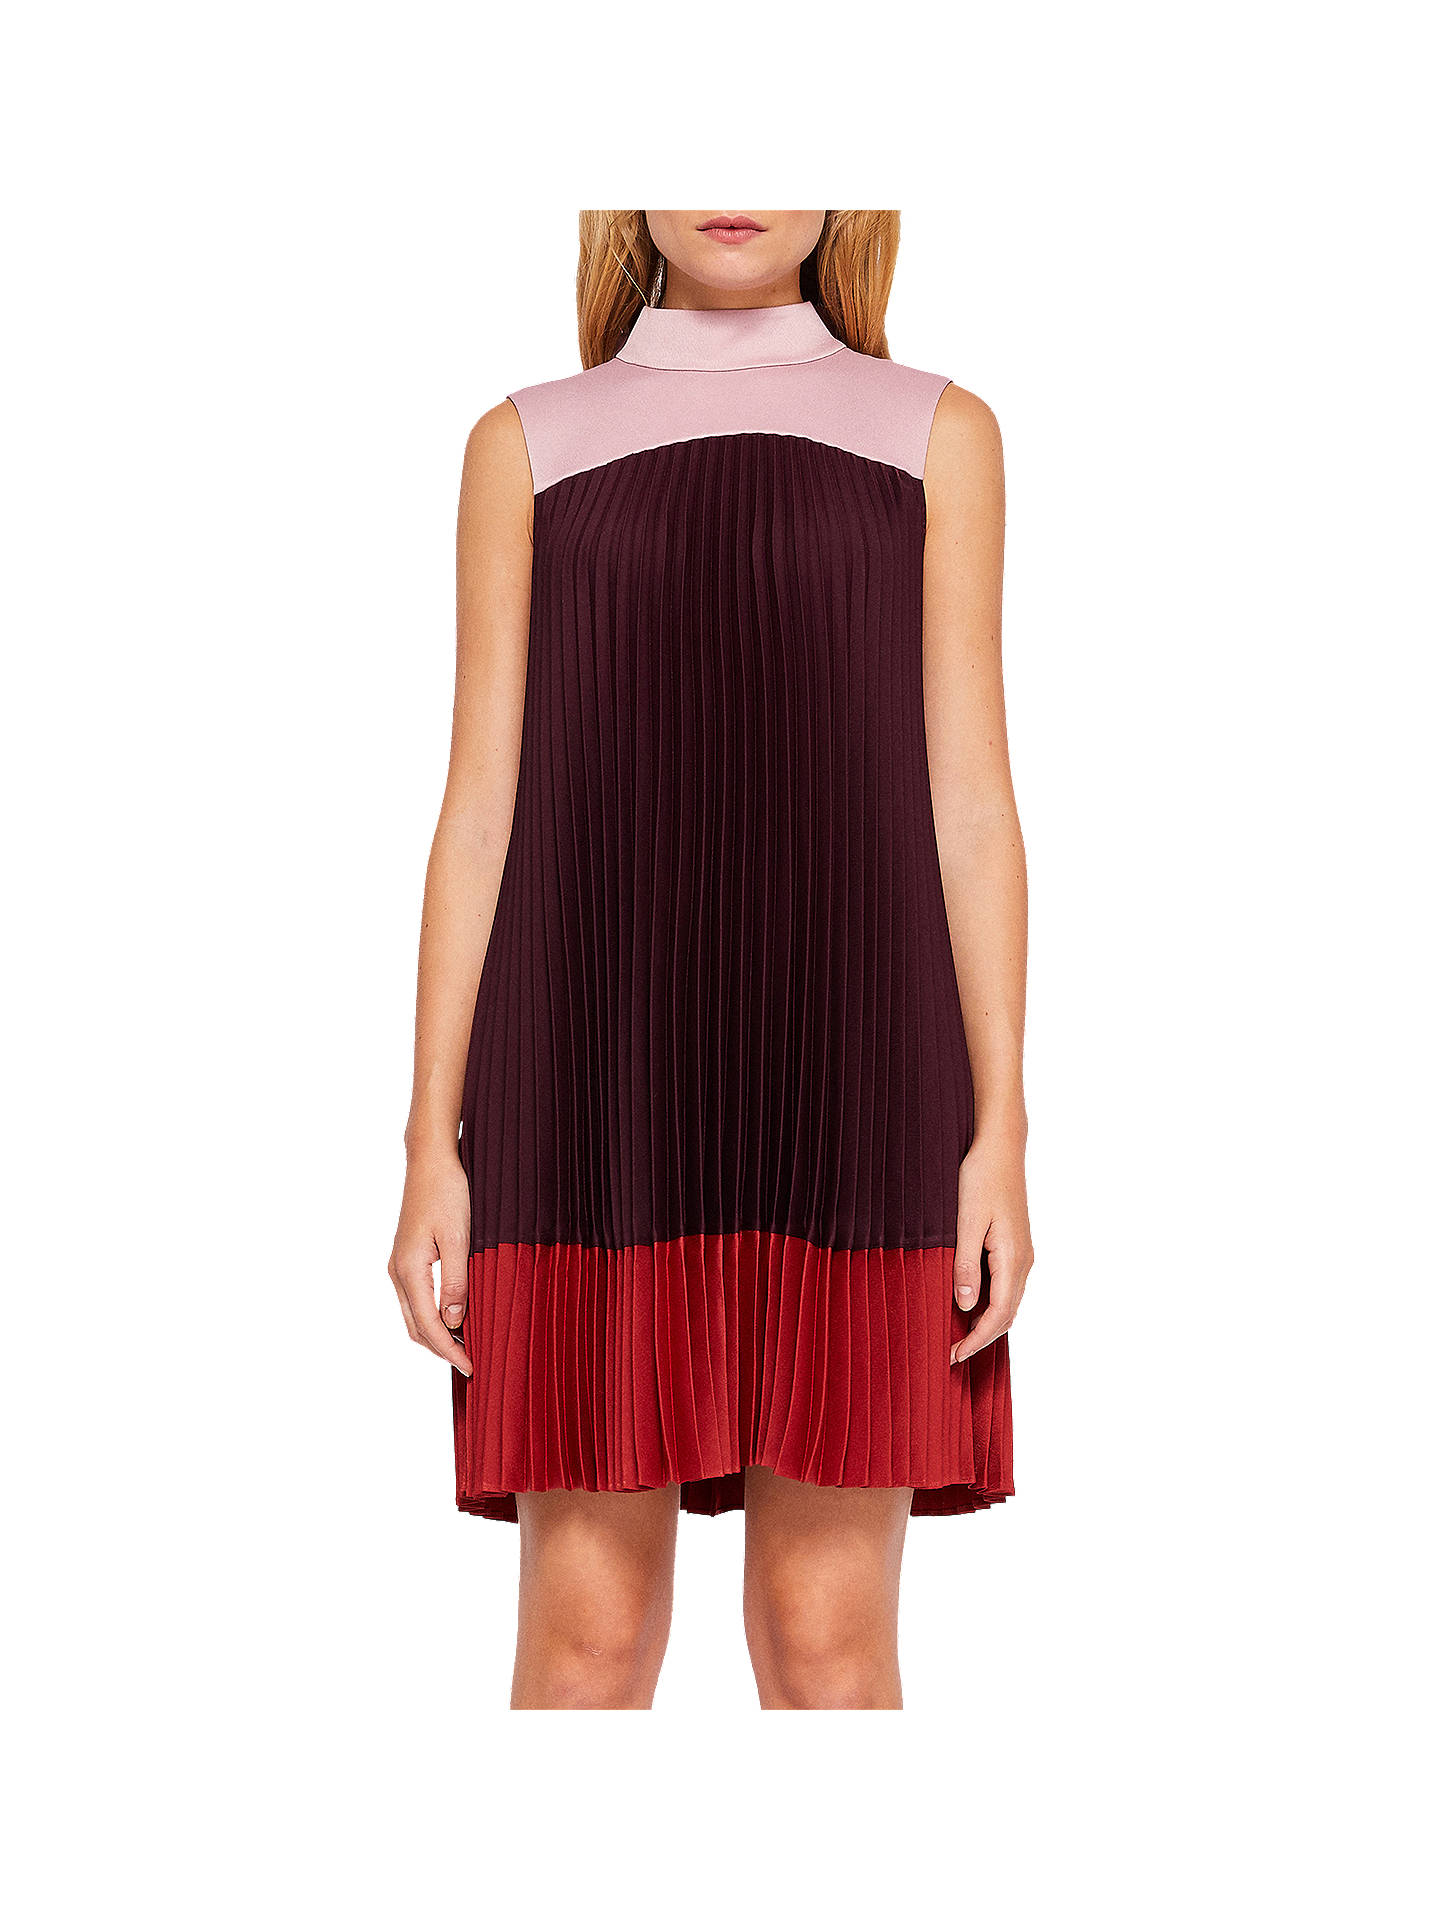 0883bdd0eb91 Buy Ted Baker Kimmea Pleated Dress With Bow